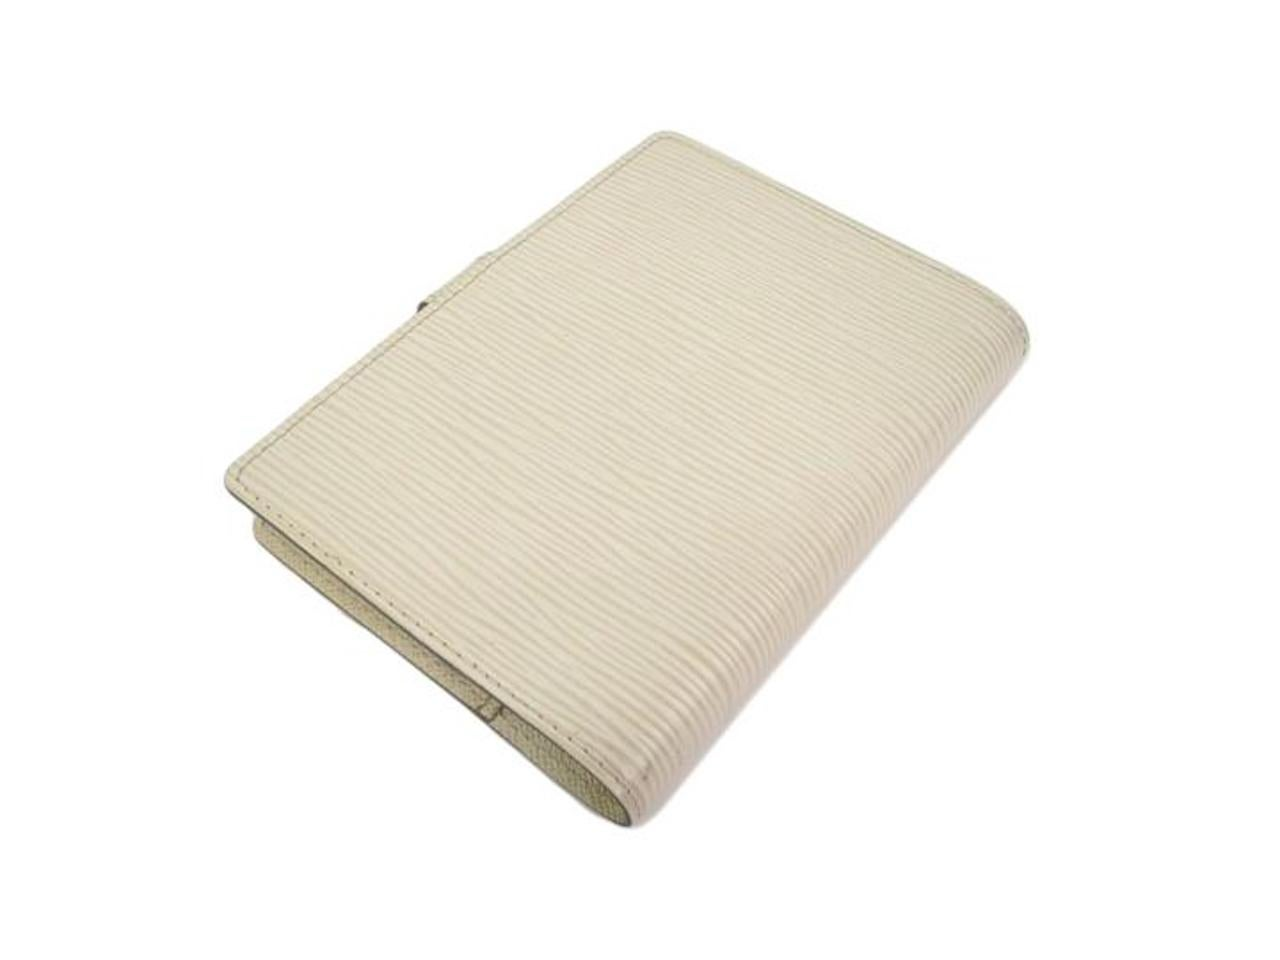 Louis Vuitton Ivory Mens Womens Leather Travel Agenda Planner Notebook Cover AaTd5FEYg